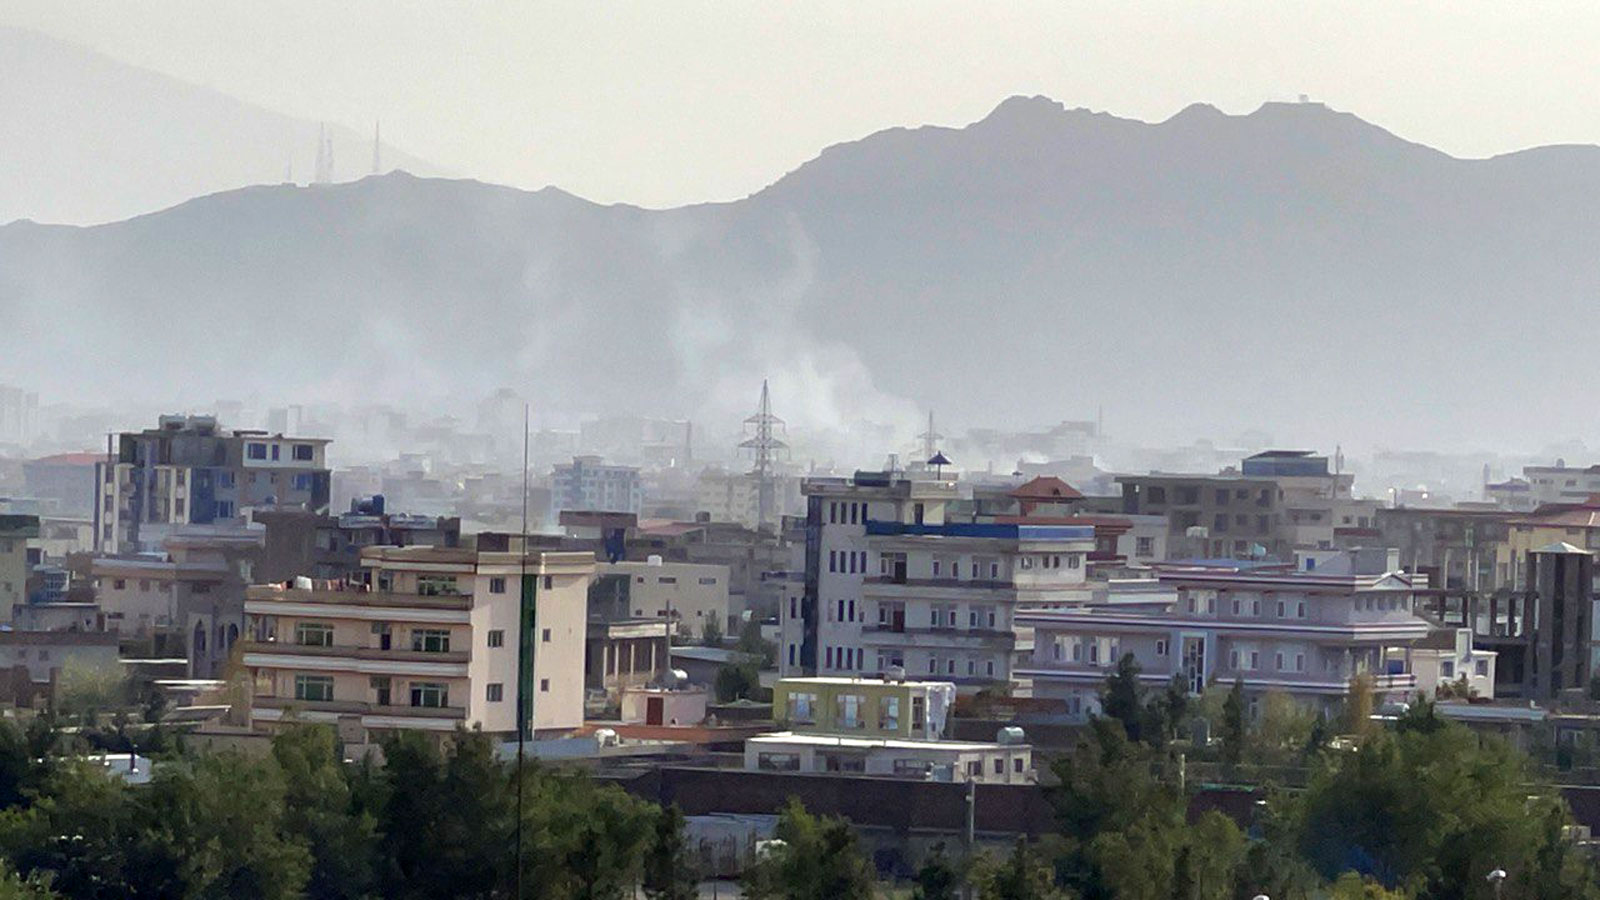 Smoke rises after an explosion in Kabul, Afghanistan, on August 29, 2021.